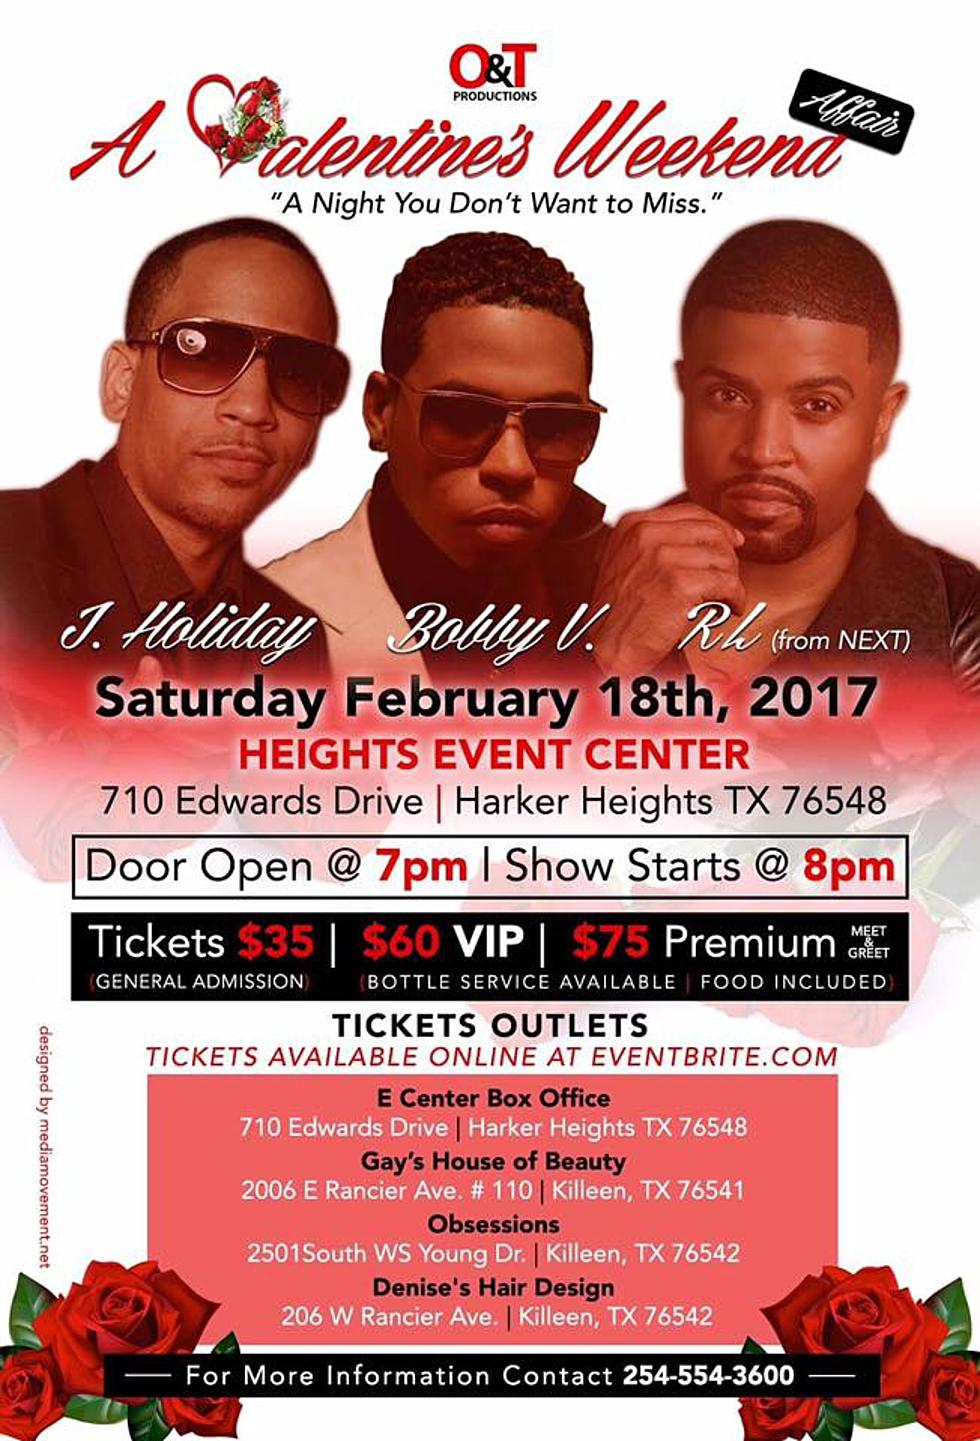 Weve Got Tickets To See J Holiday Bobby V Rl In Harker Heights